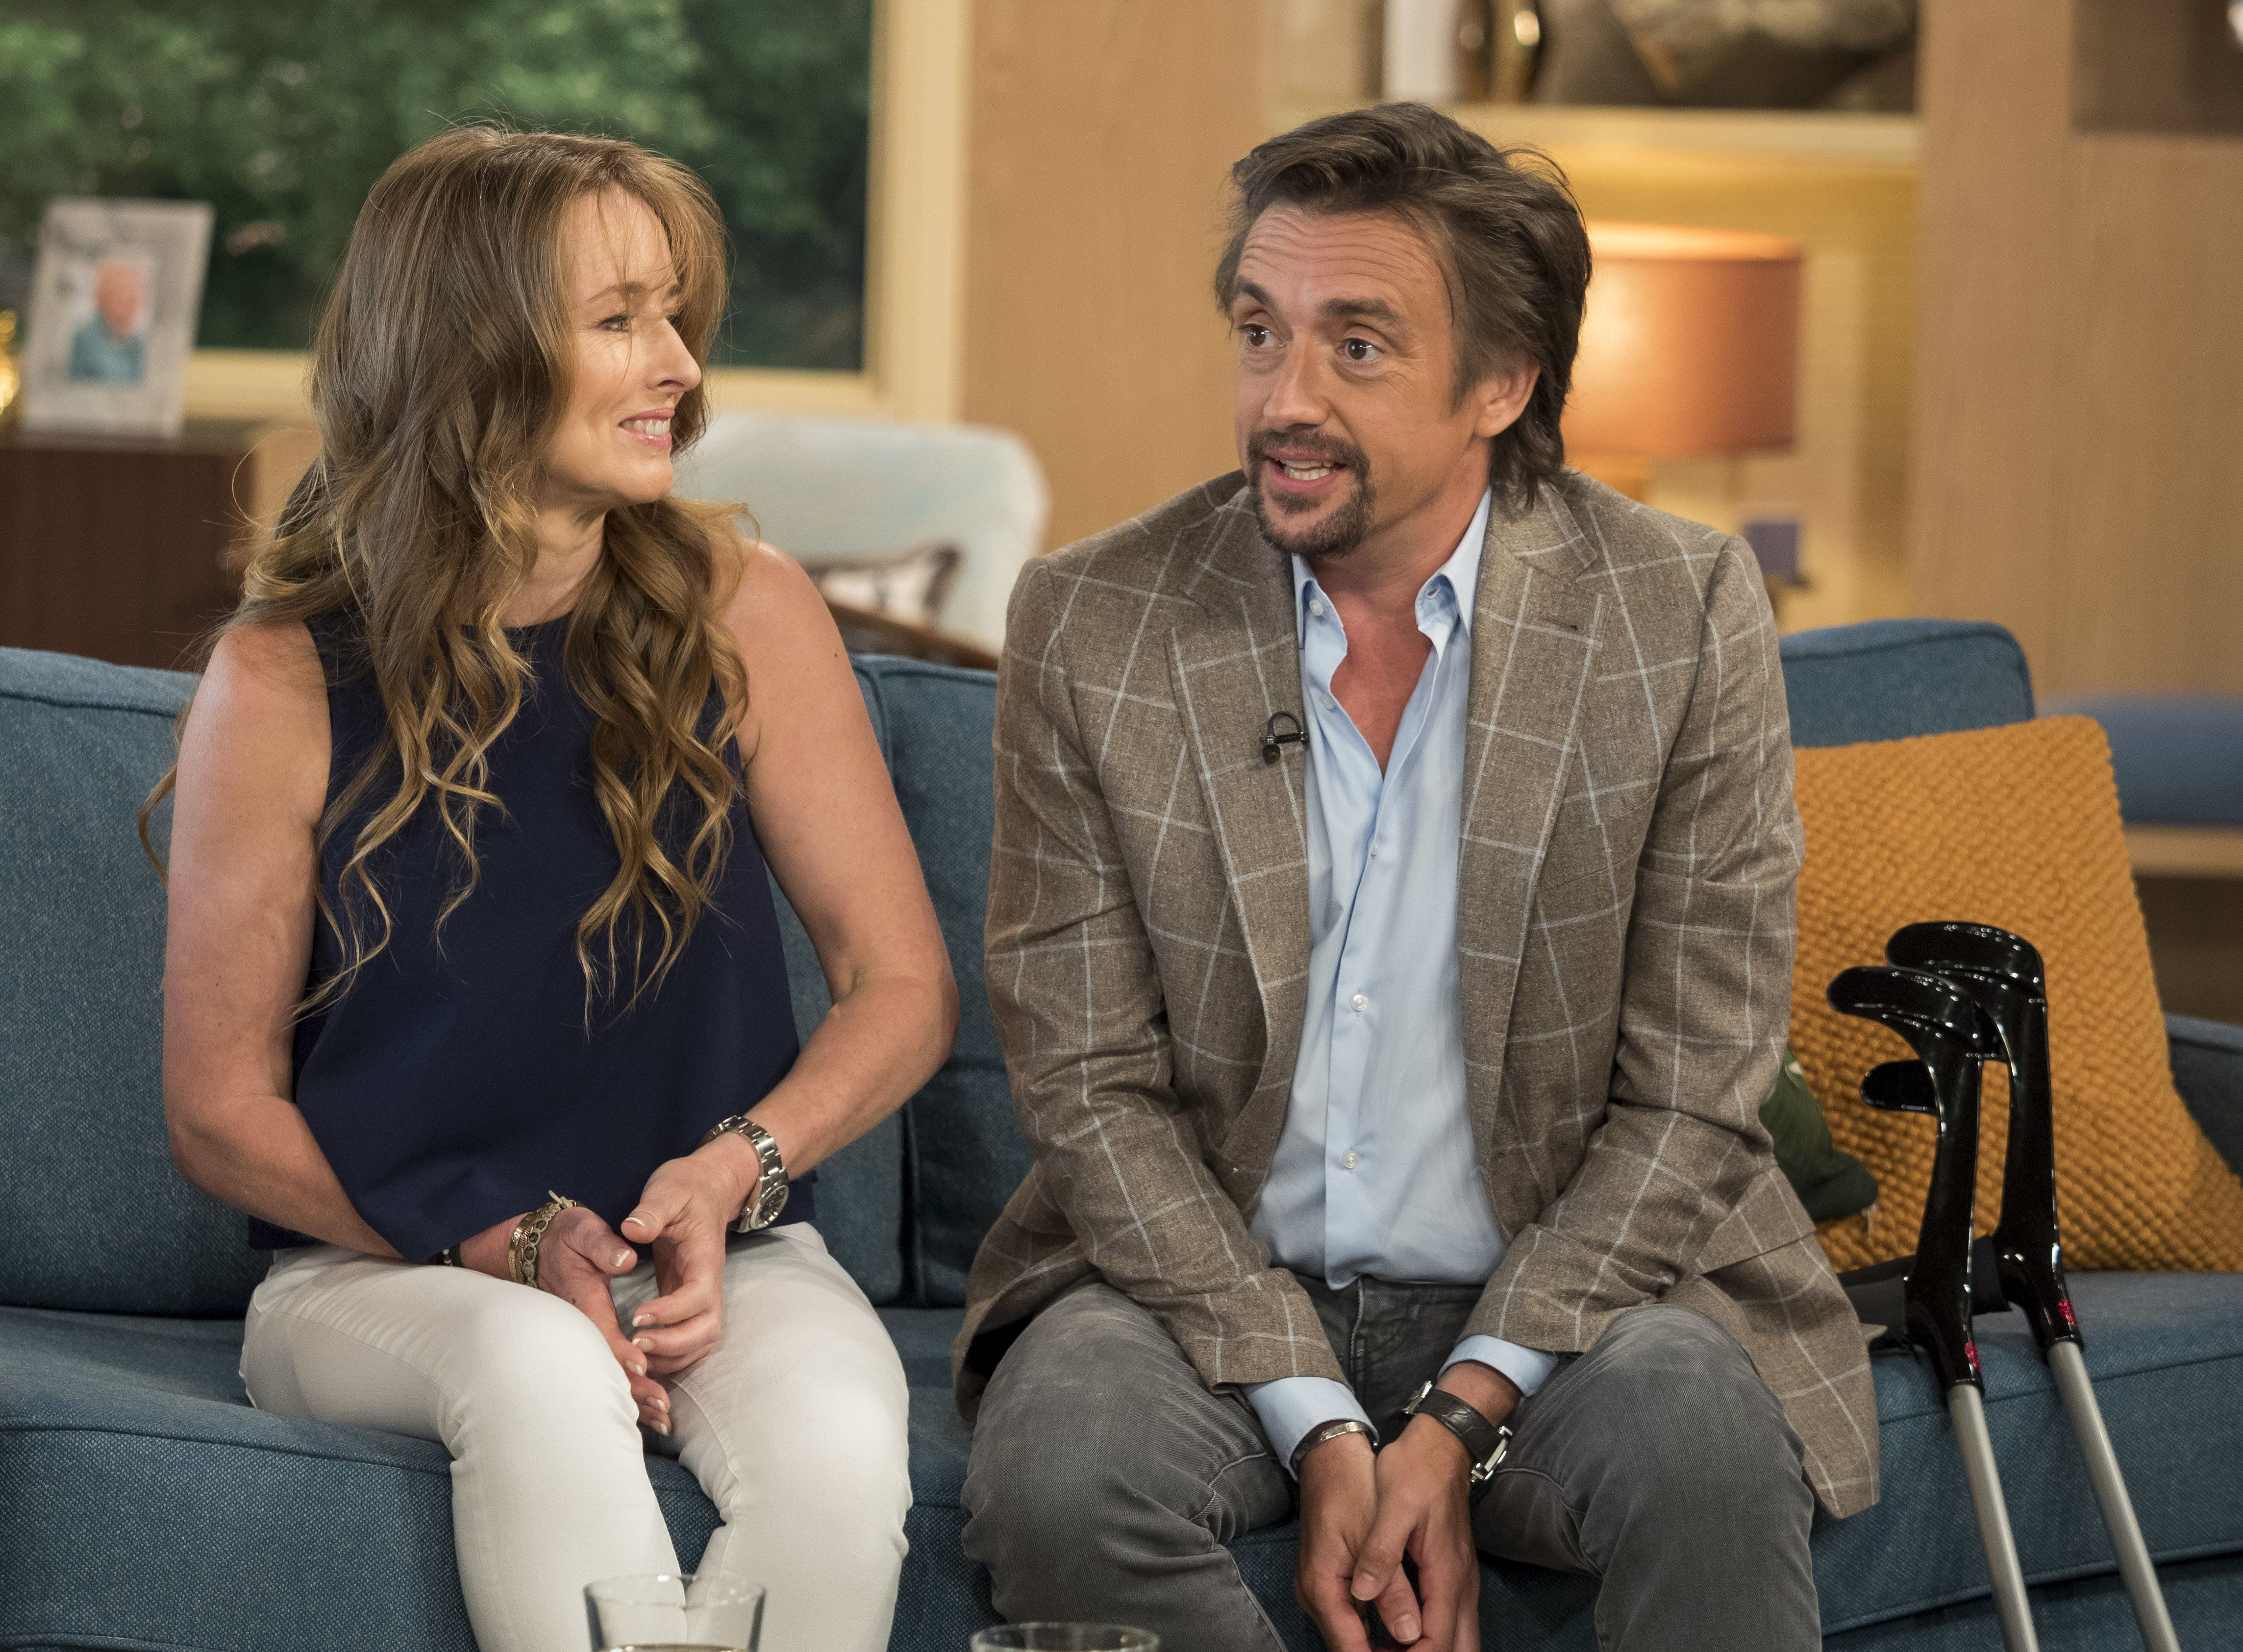 Richard Hammond's Wife Mindy Reveals Her Stern But Simple Advice For The TV Star After Latest